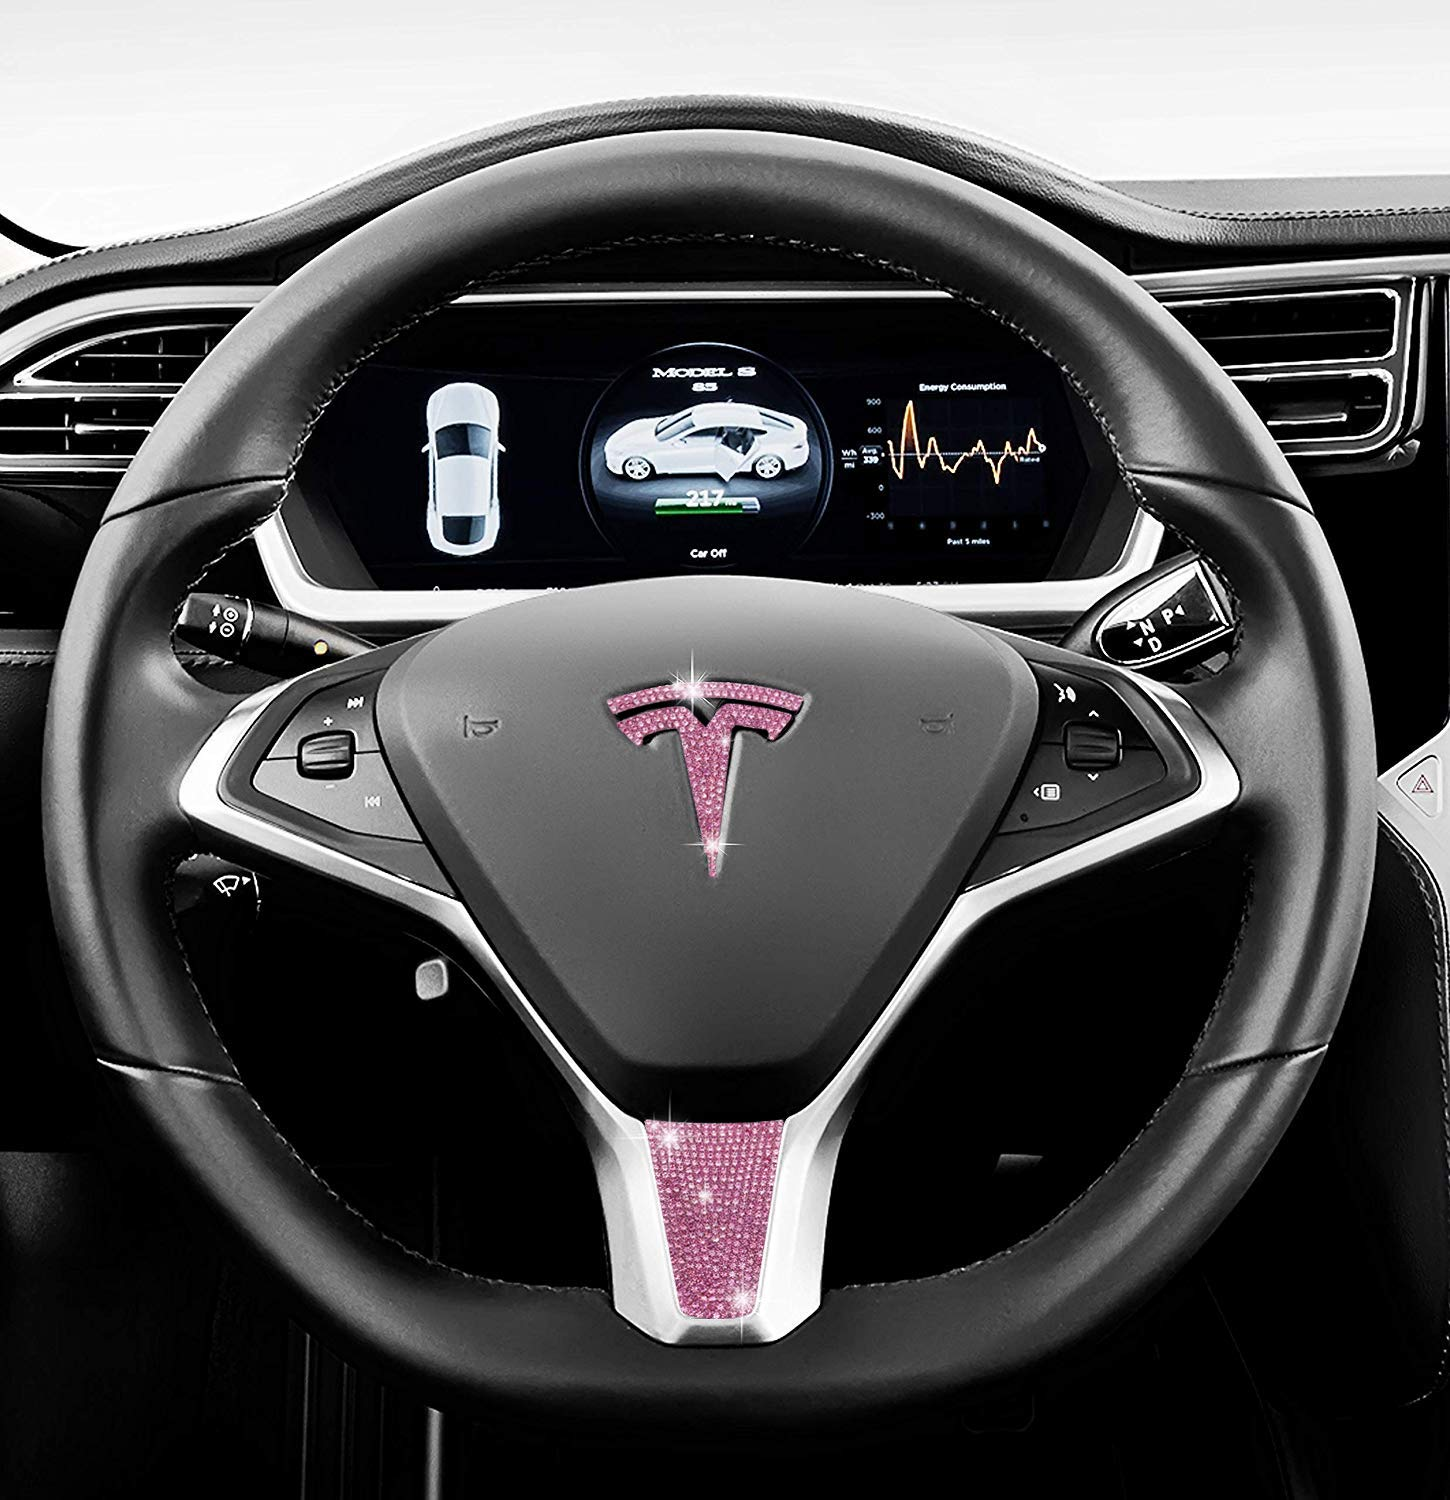 Be A Blinger Tesla Auto Accessory Steering Wheel Accessories Crystal Badge Bling T Logo Decal Handmade Rhinestone Emblem Decoration Cover Car Sticker Holiday Christmas Gift Box Baby Pink, Model X